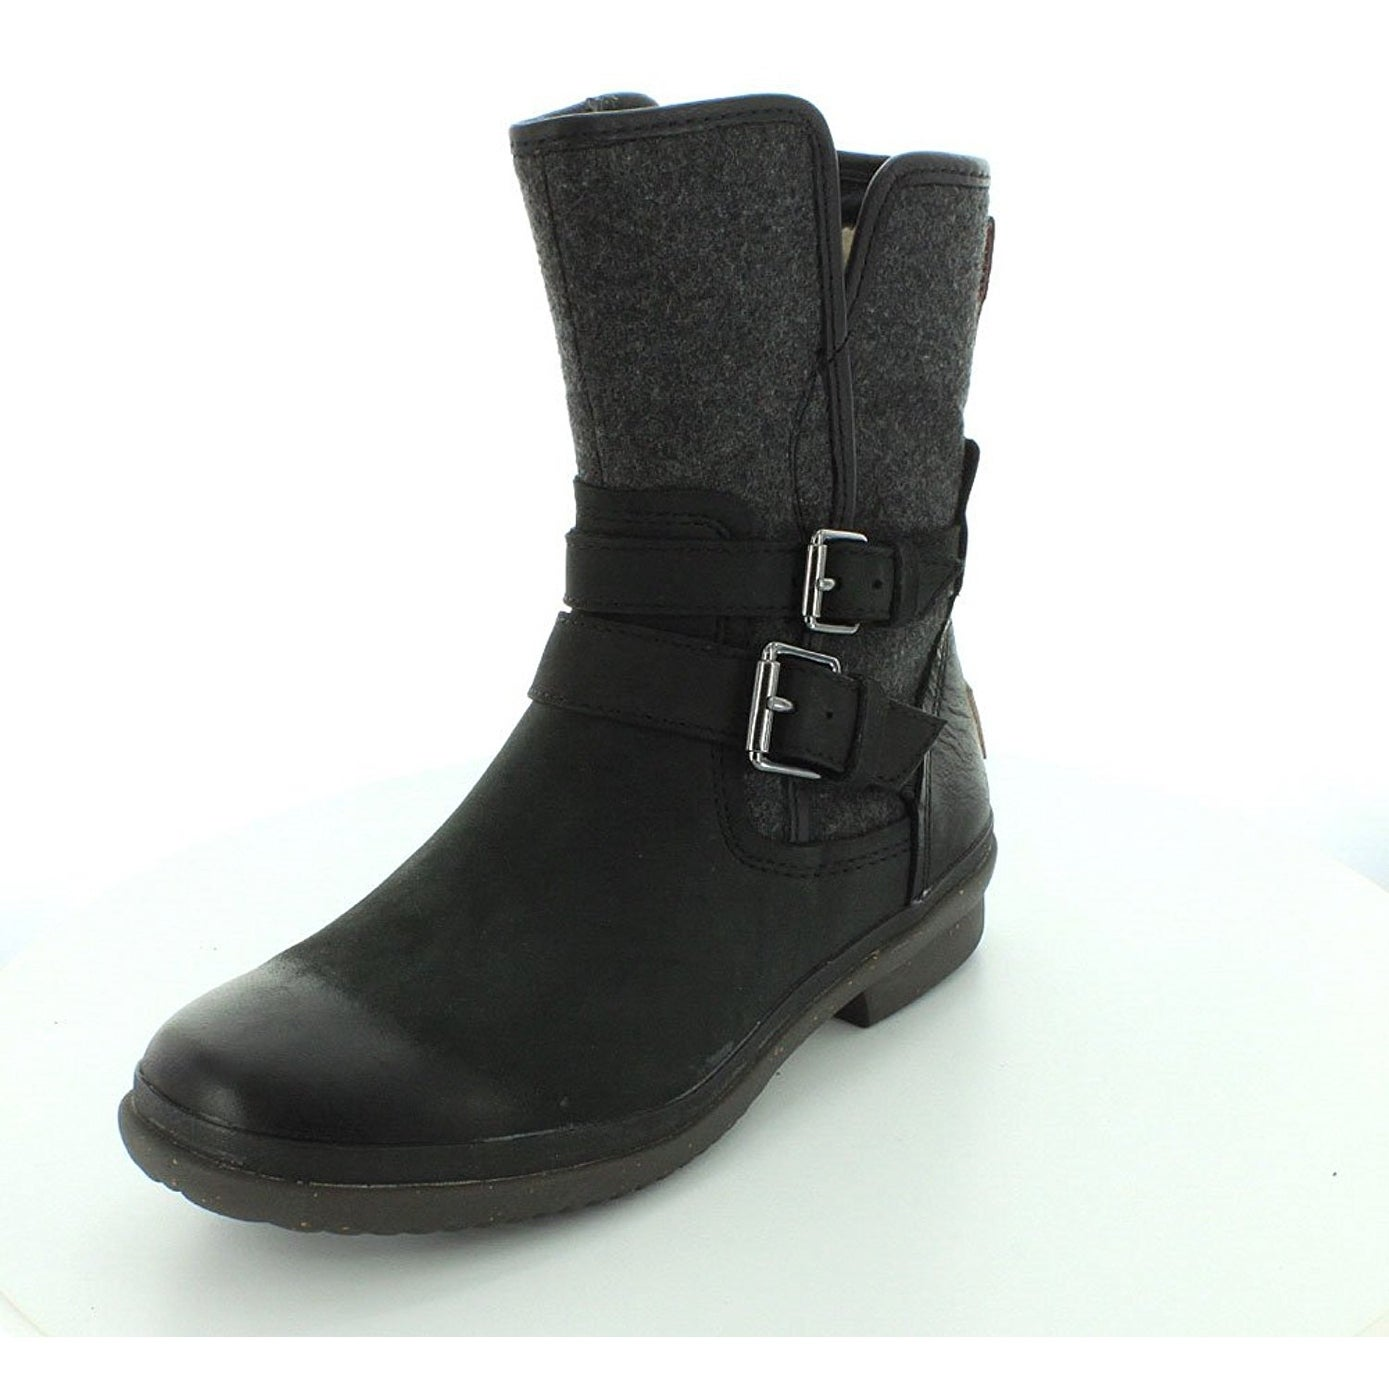 Shop Ugg Women s Simmens lined with Plush Wool Leather Boot - Free ... a56f38a0d